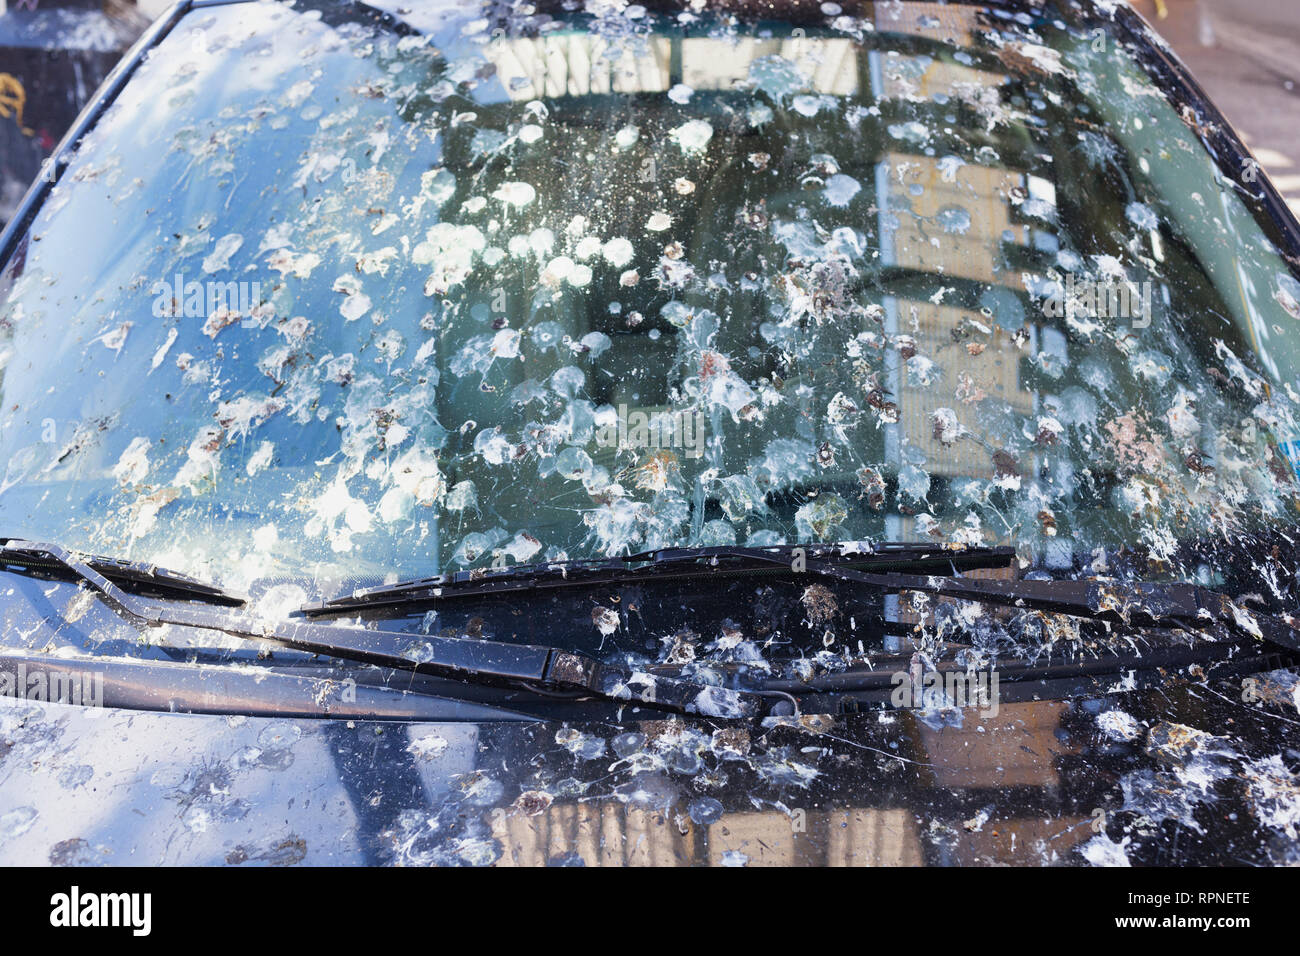 Bird pigeon droppings on car windshield that has been long-term parked in Queens, New York City. - Stock Image